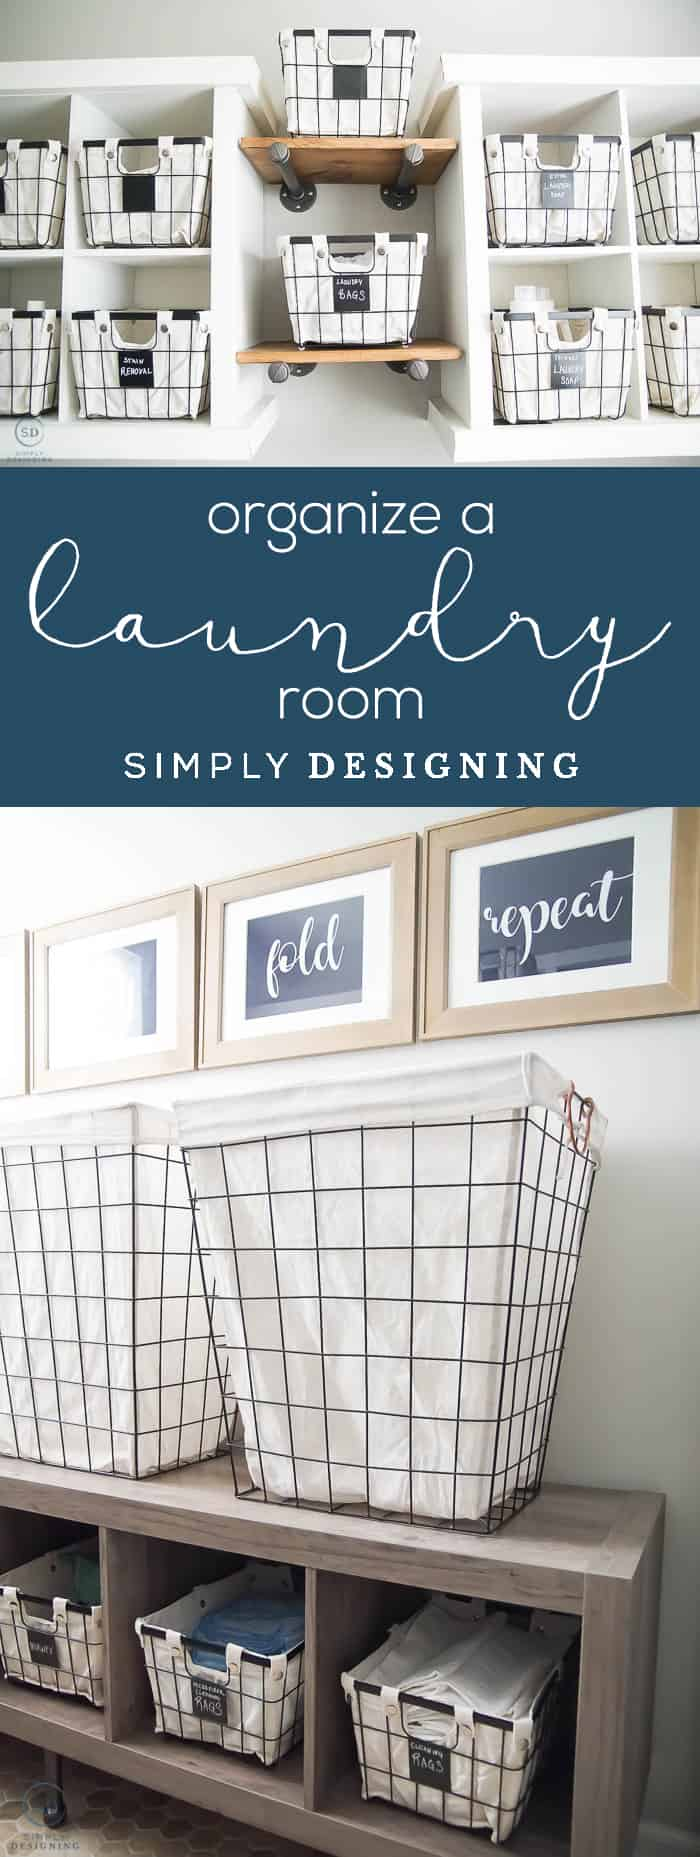 How to Organize a Laundry Room - Laundry Room Makeover